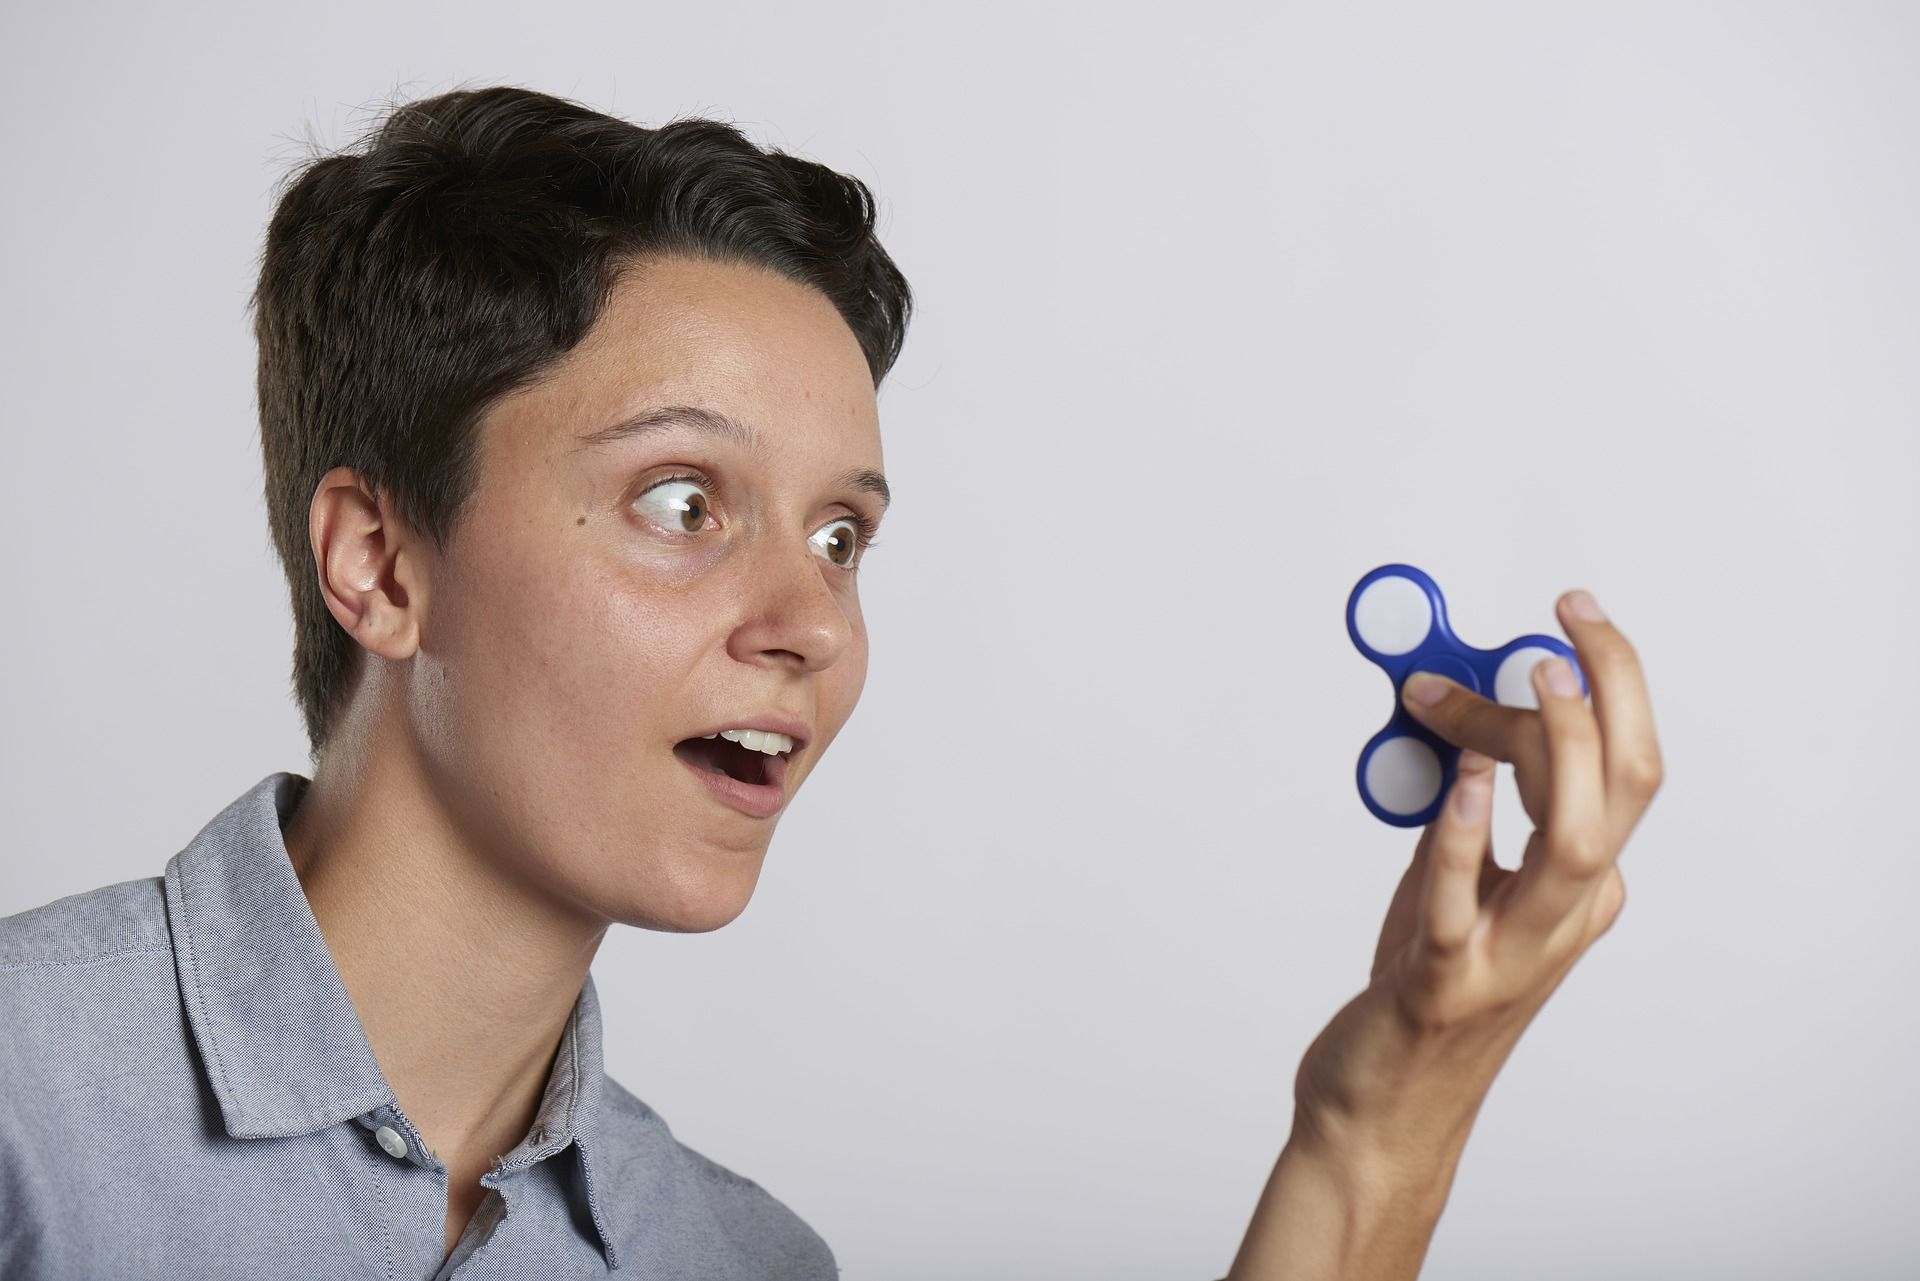 Person with fidget spinner not focused on study